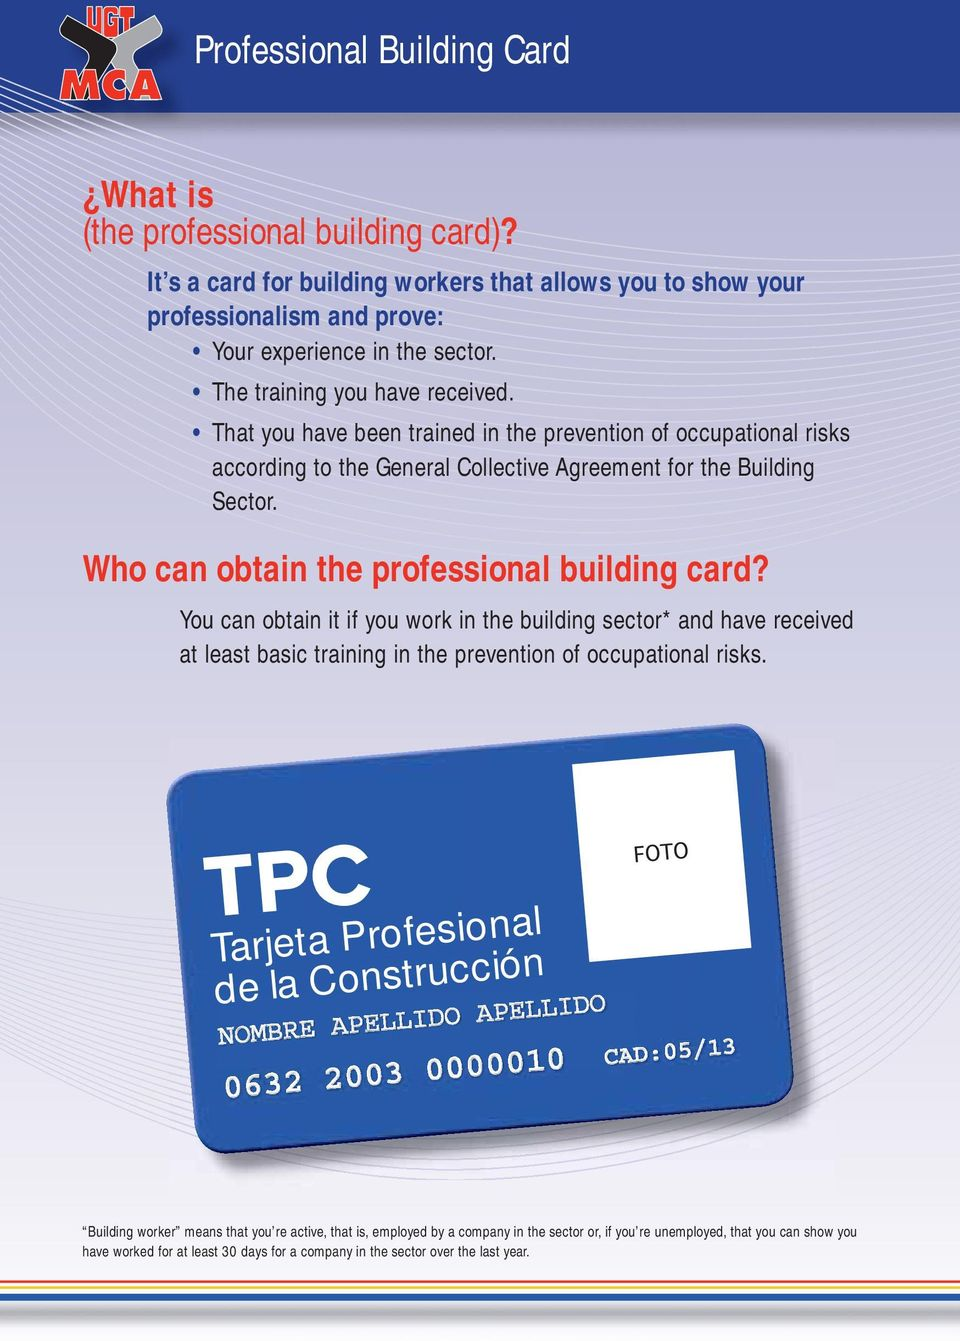 Who can obtain the professional building card? You can obtain it if you work in the building sector* and have received at least basic training in the prevention of occupational risks.